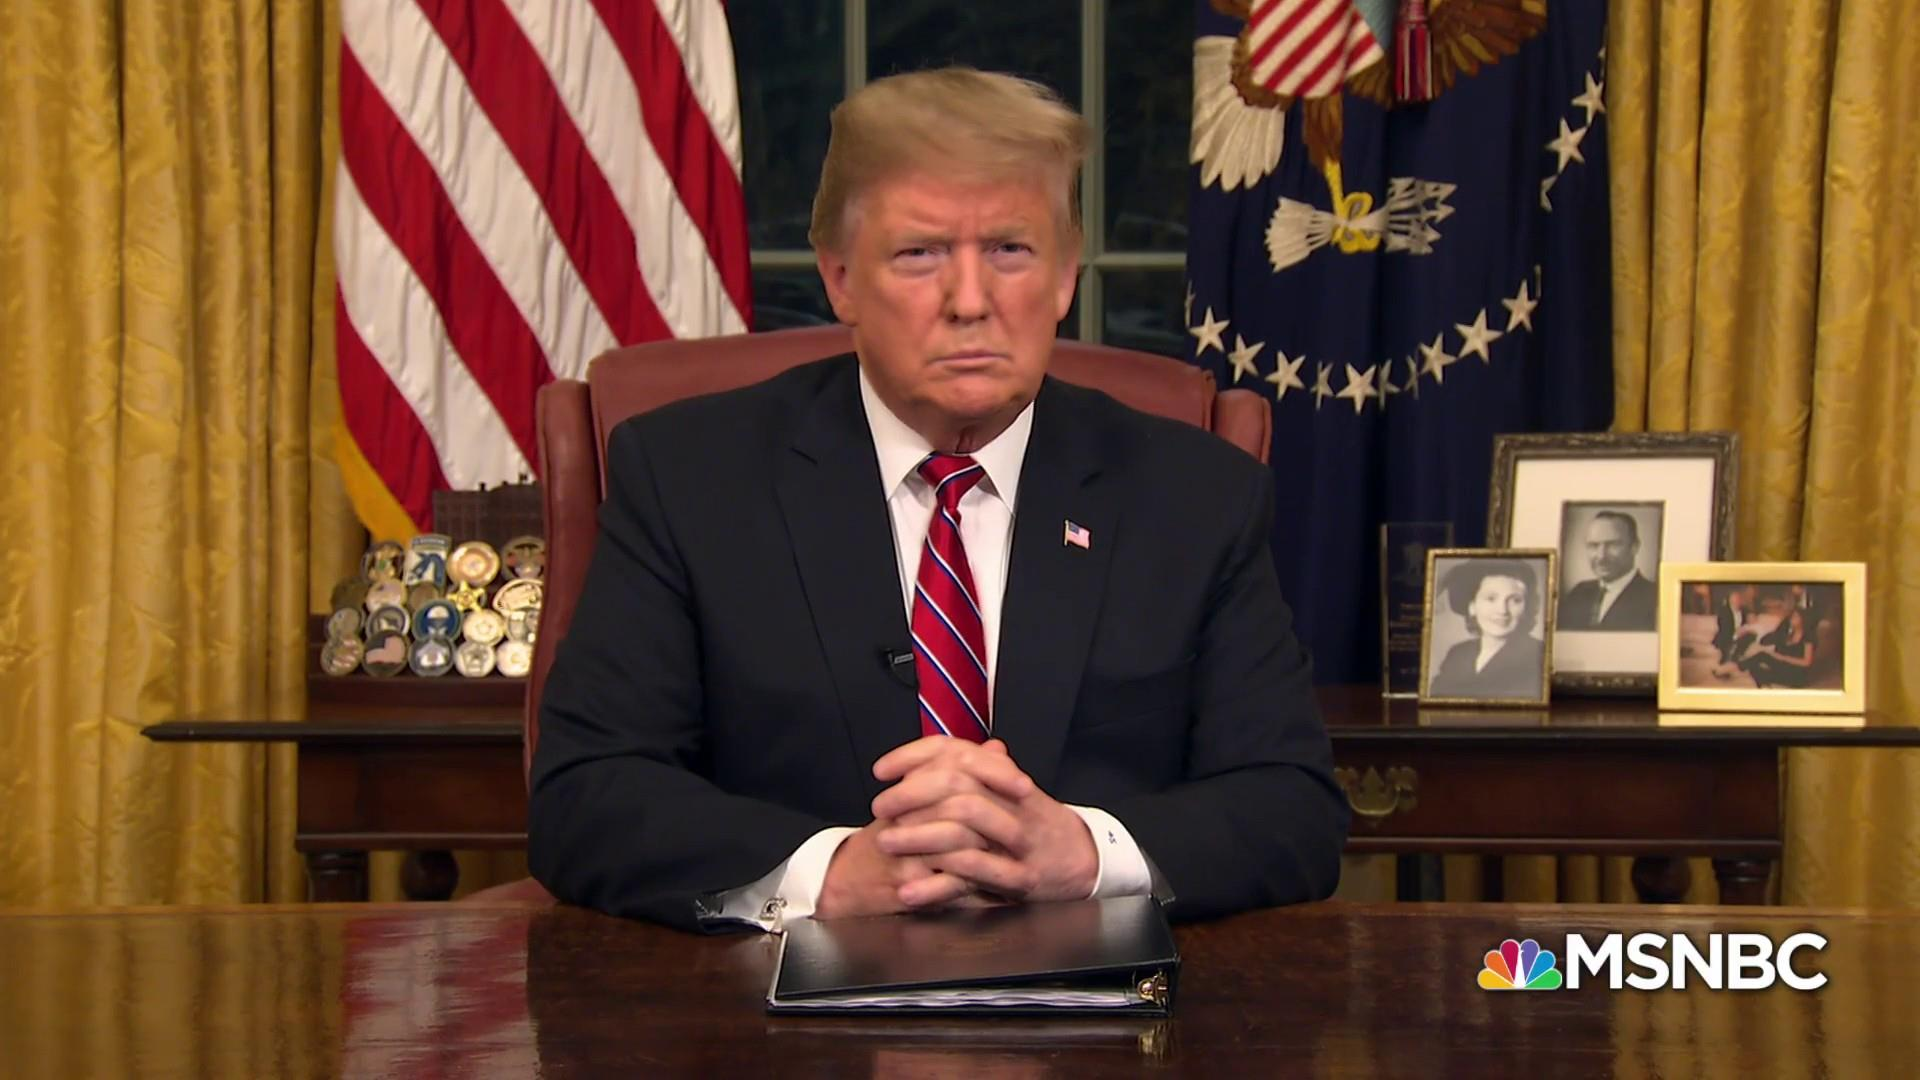 President Trump addresses the nation from the Oval Office